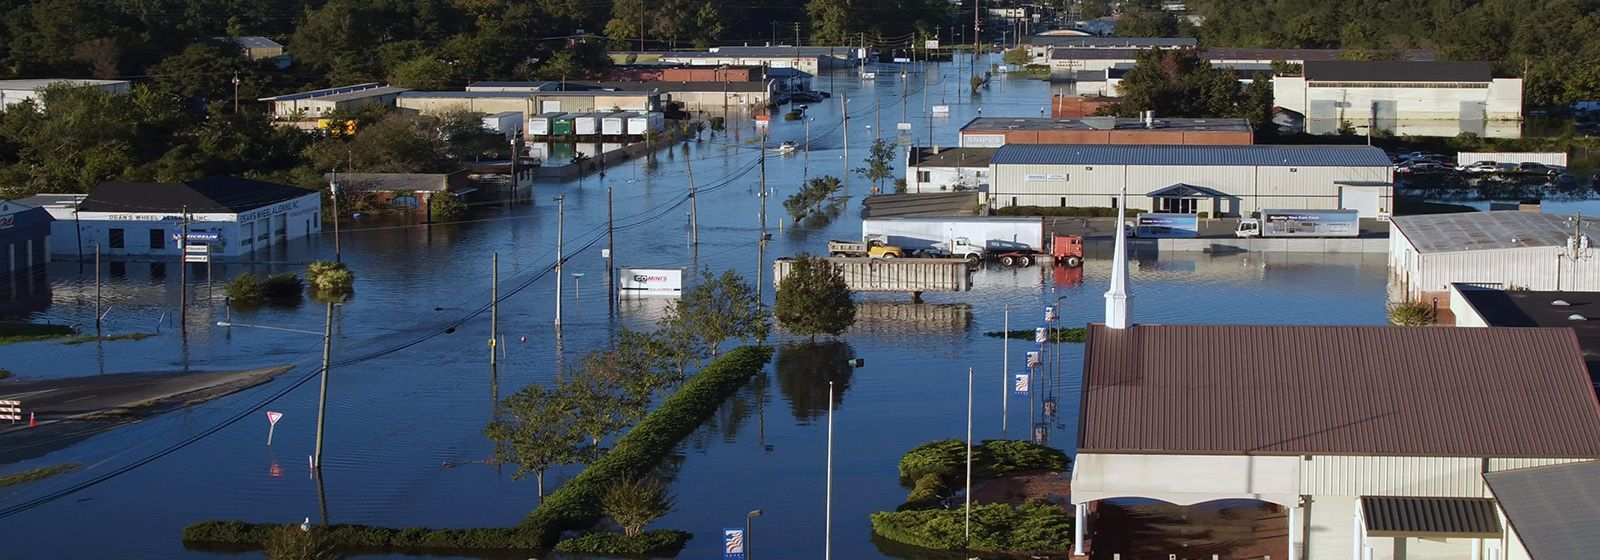 2019 Storm Predictions Prepare Now For Hurricane Season With These Safety Tips Duke Energy Illuminati Hurricane Season National Hurricane Center Hurricane